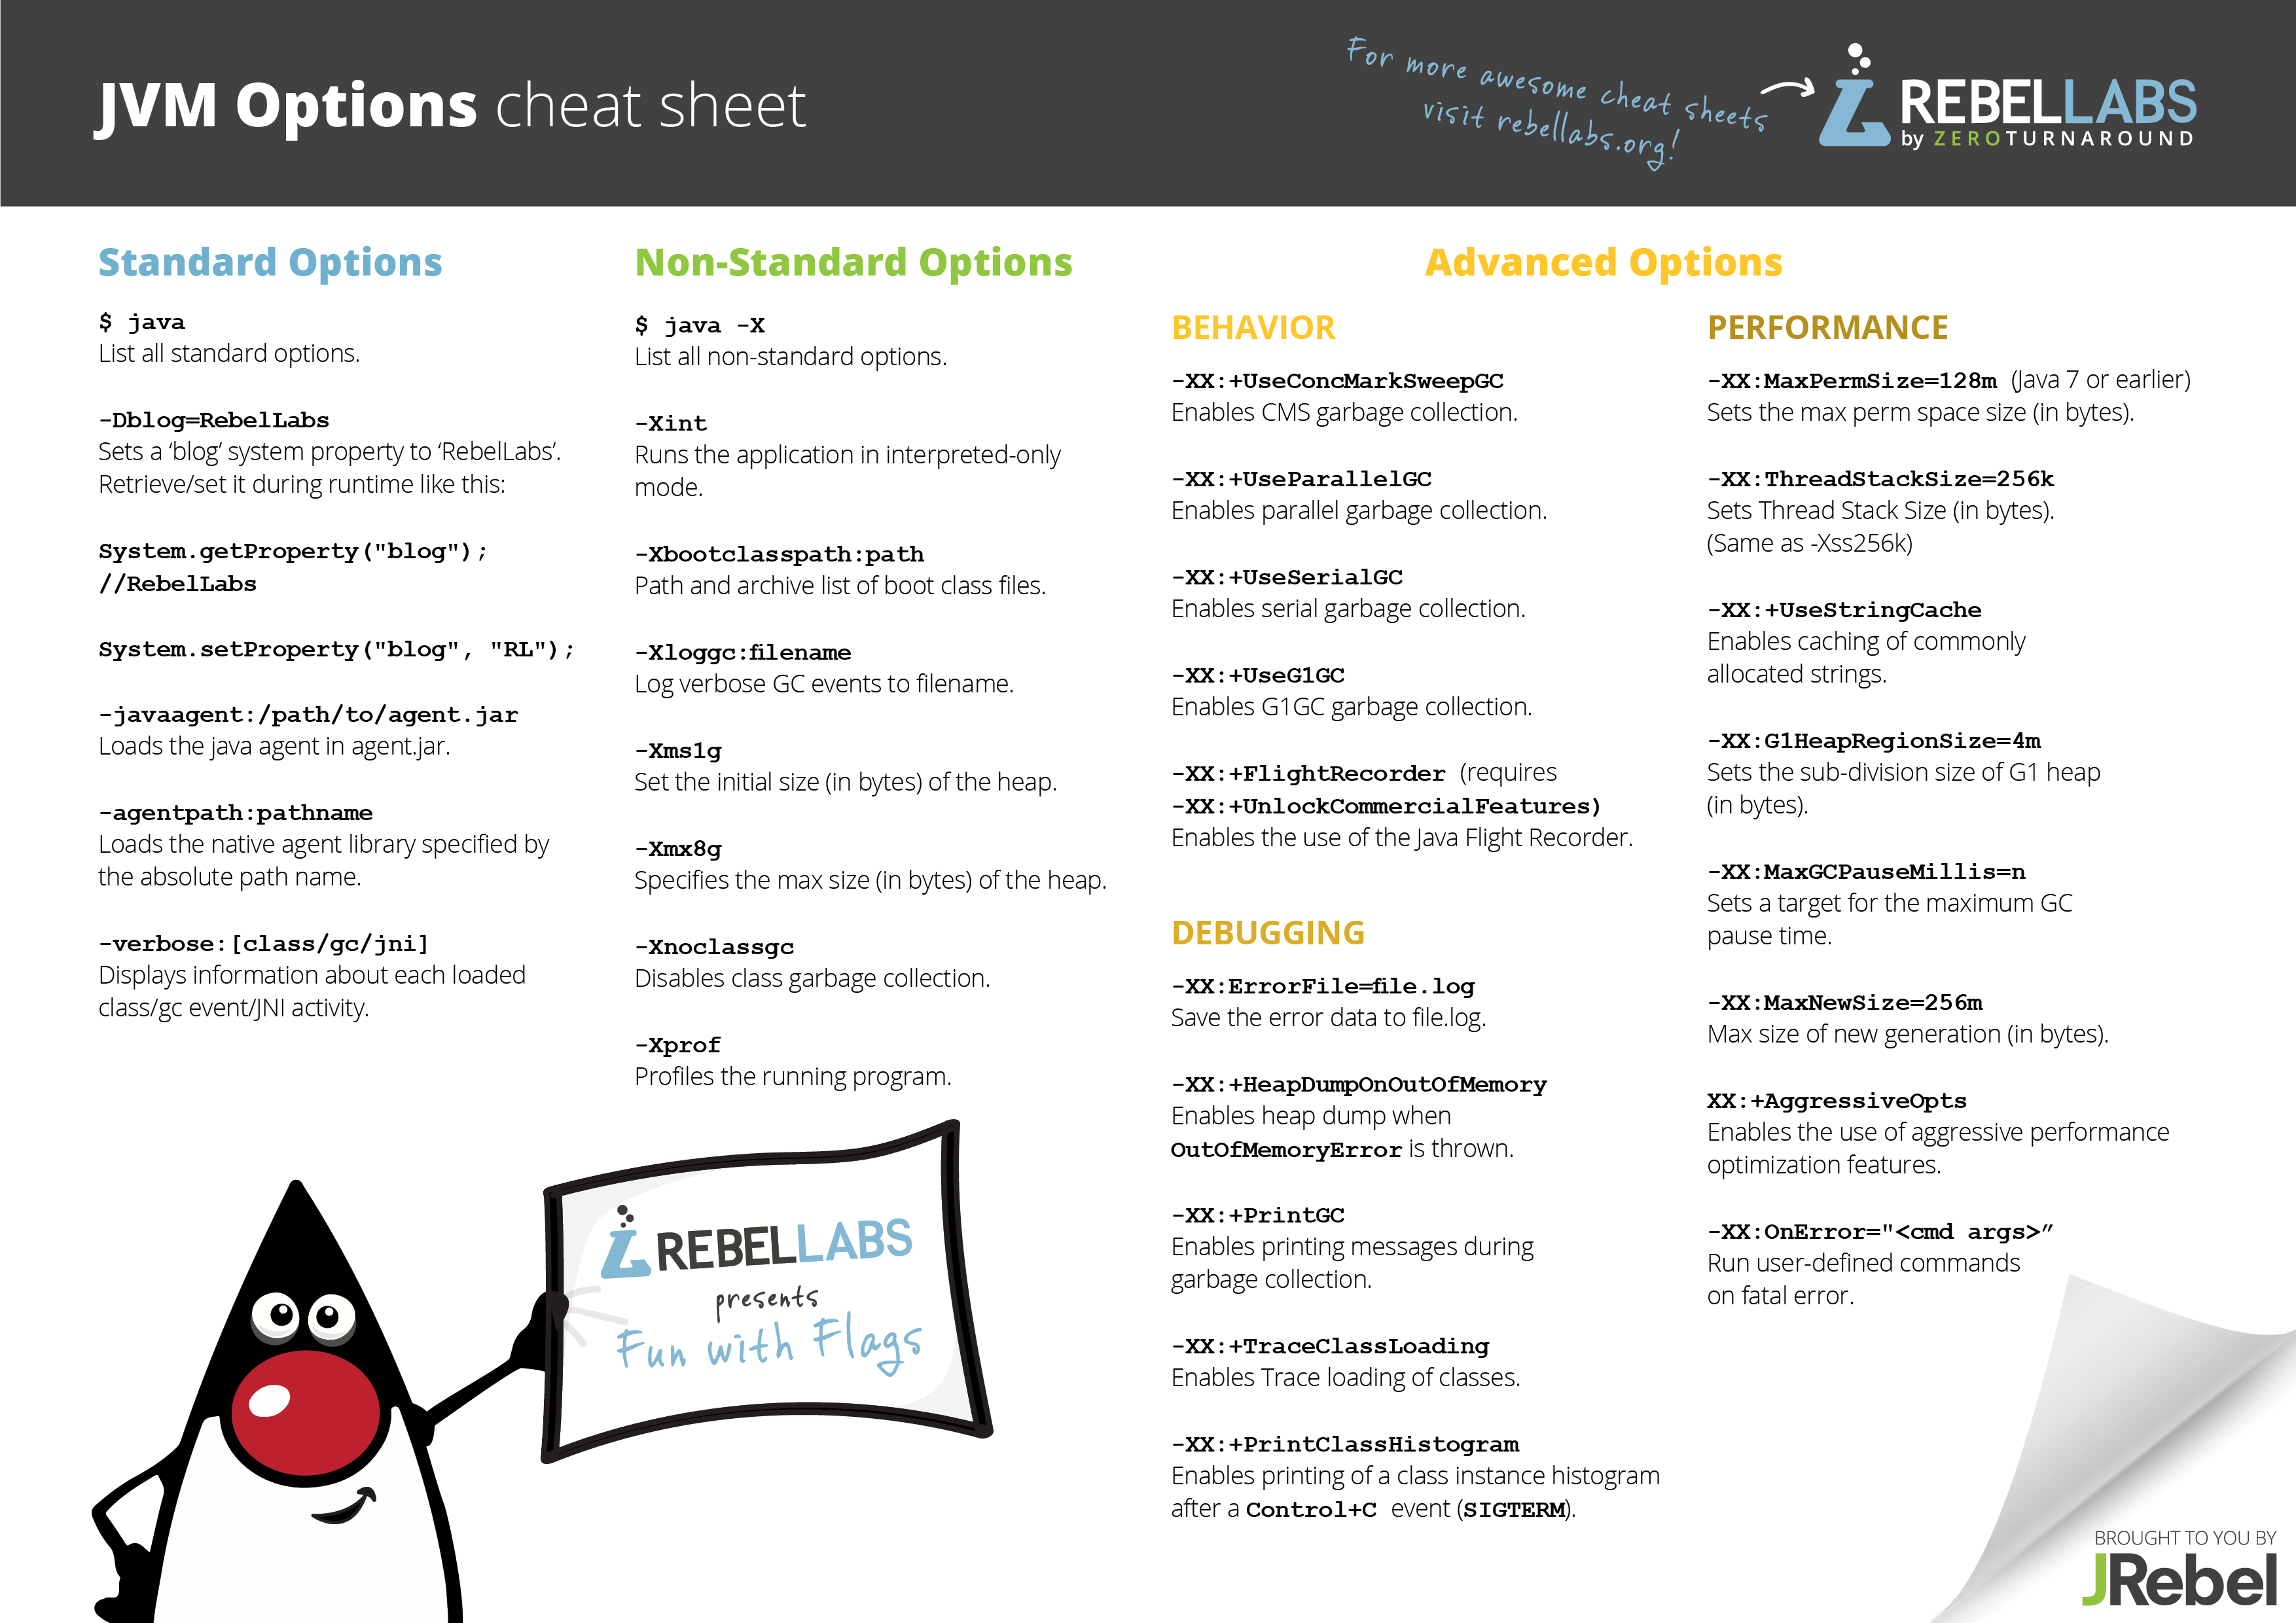 jvm options cheat sheet